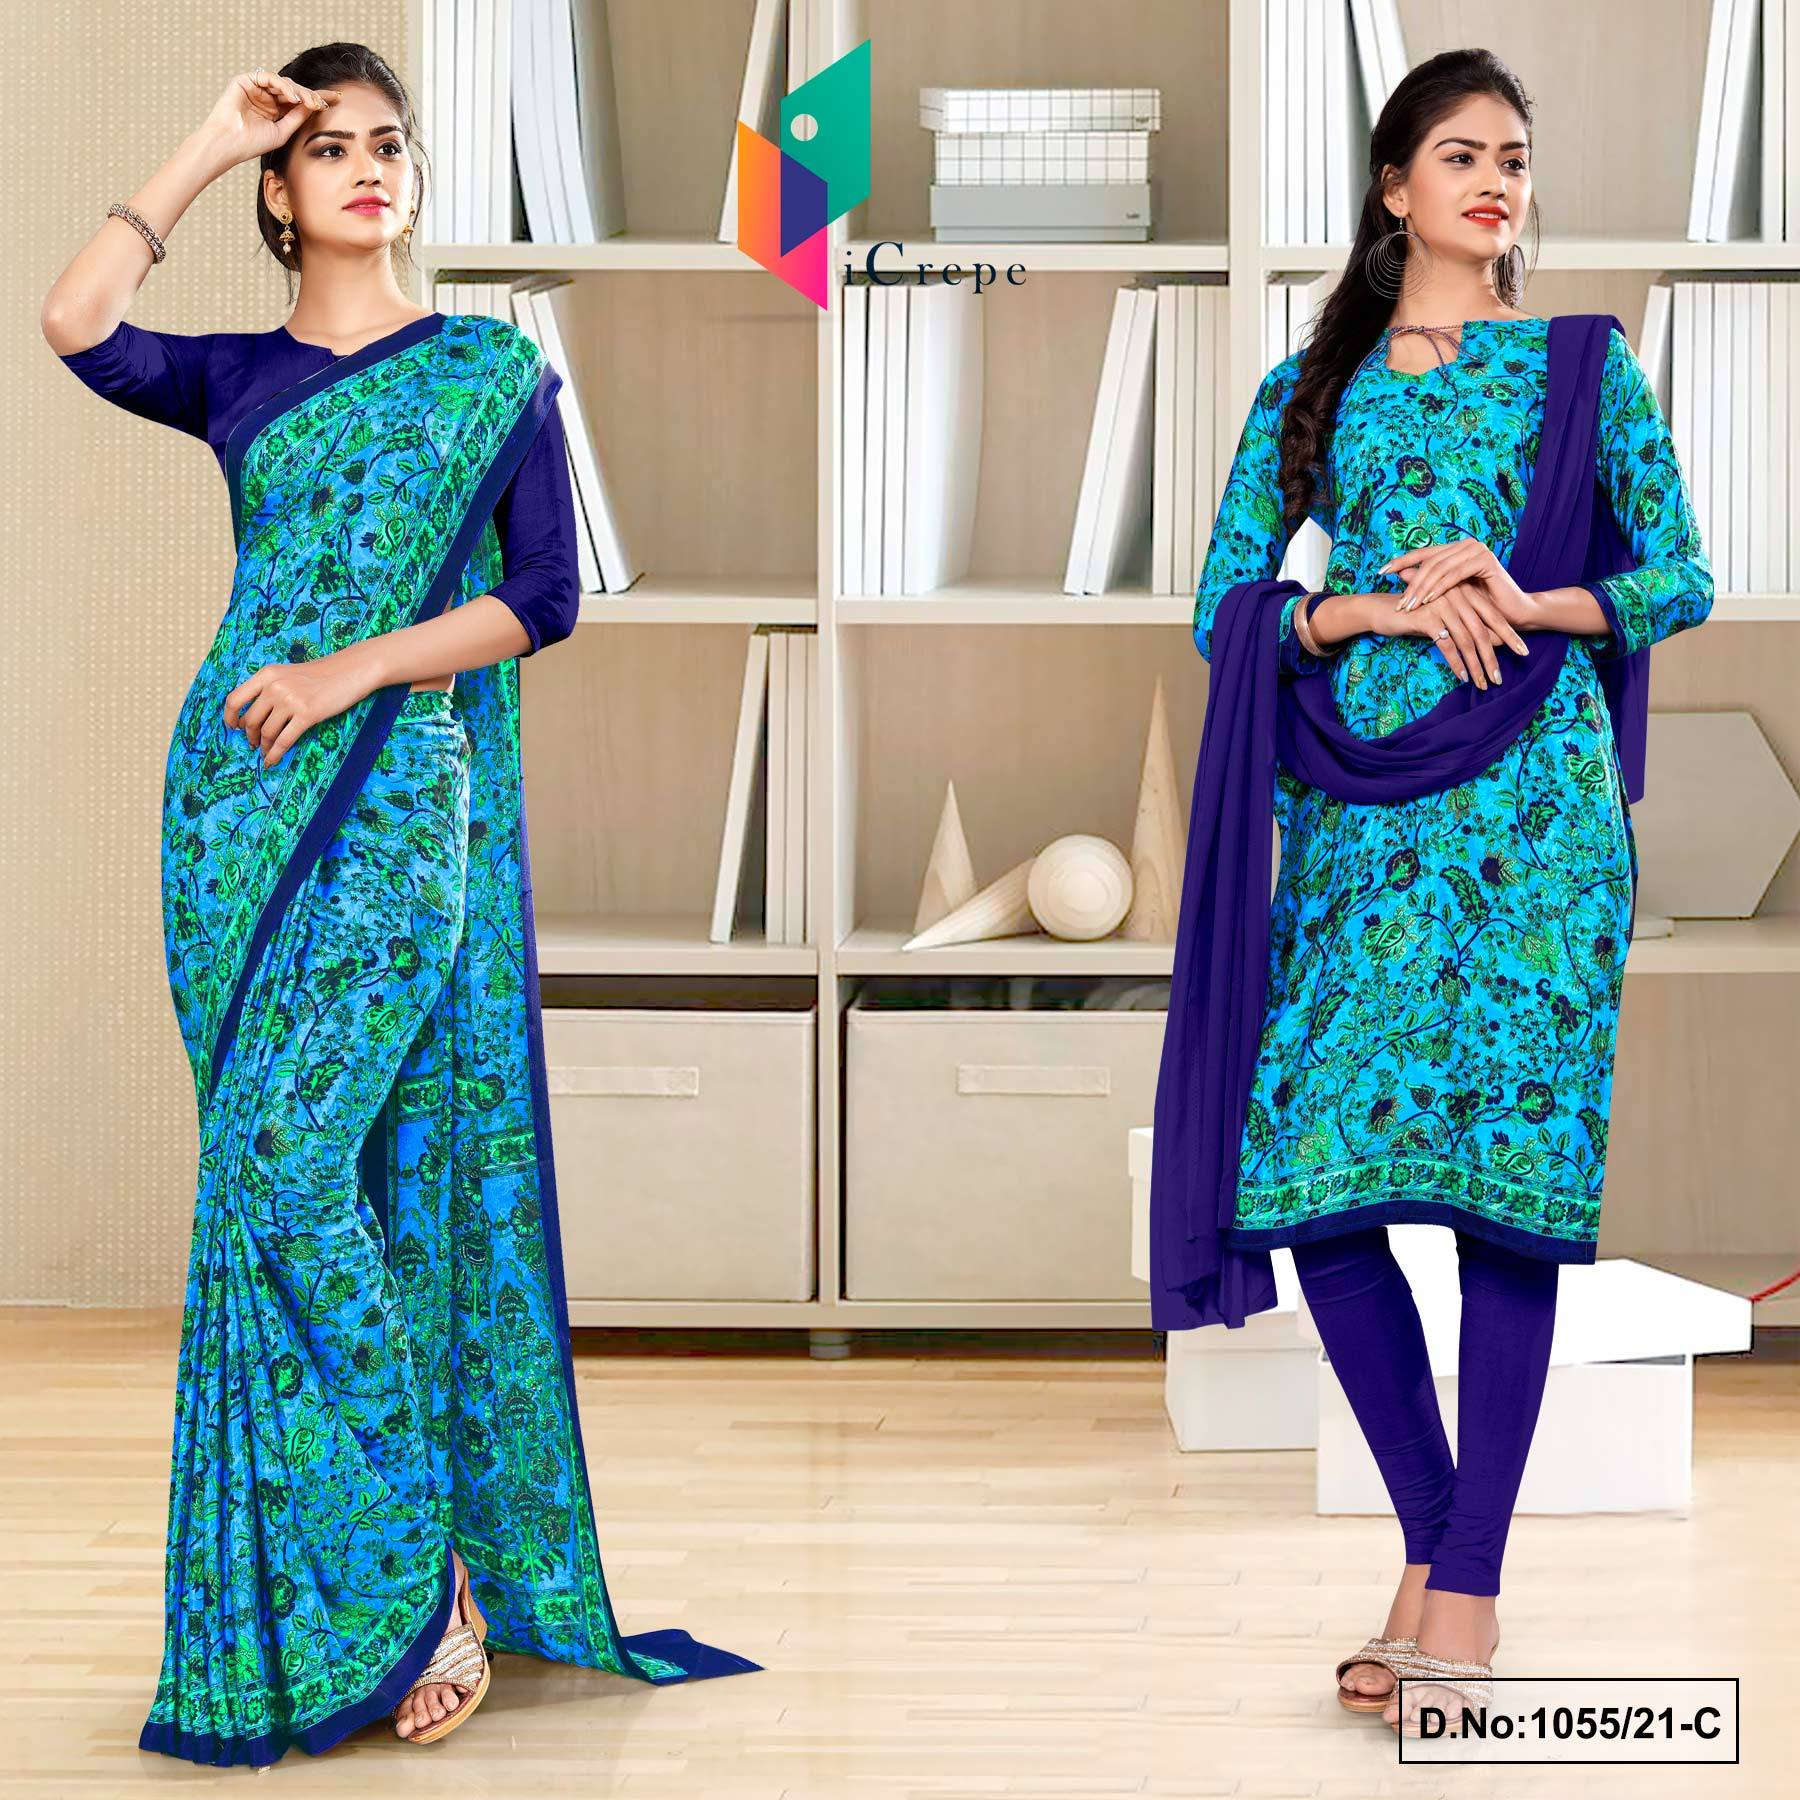 Sky Blue Navy Blue Flower Print Premium Italian Silk Crepe Uniform Saree Chudidar Combo for Industrial Employees